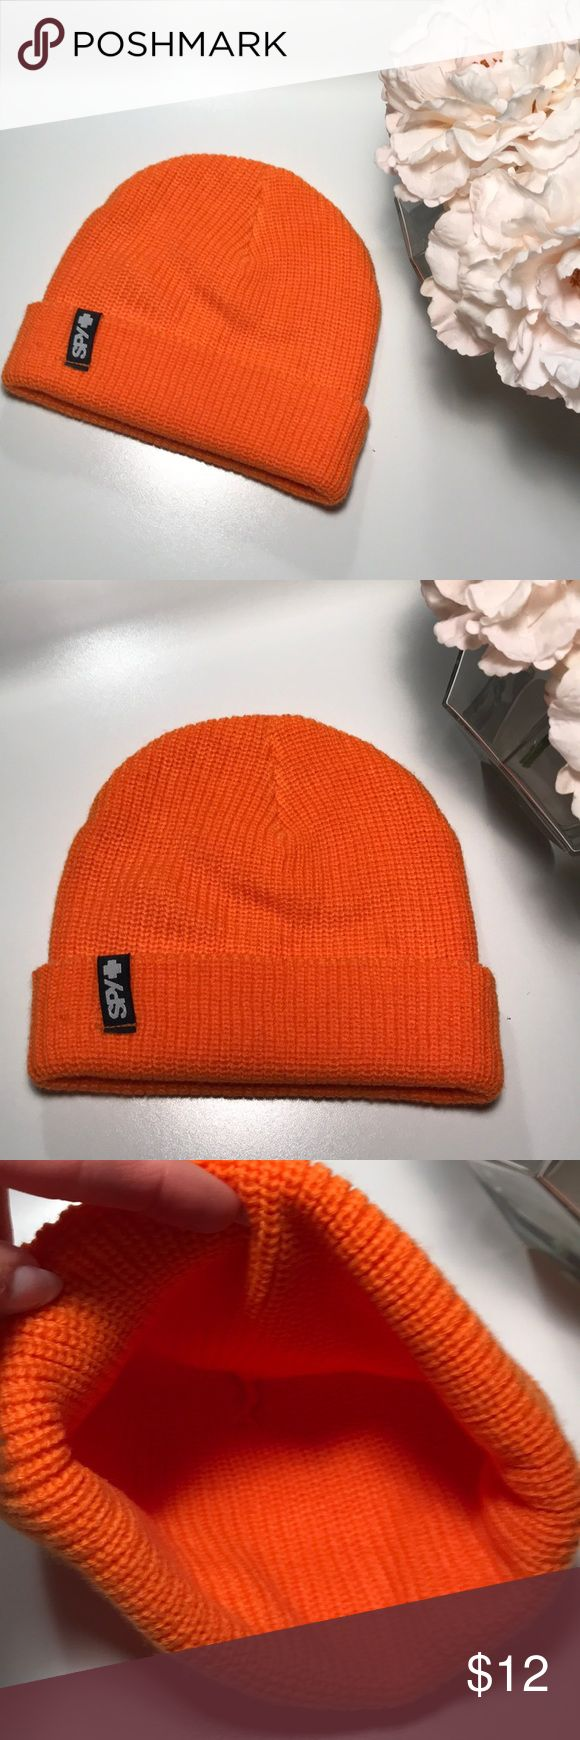 Bright orange SPY hat Nwot SPY Accessories Hats